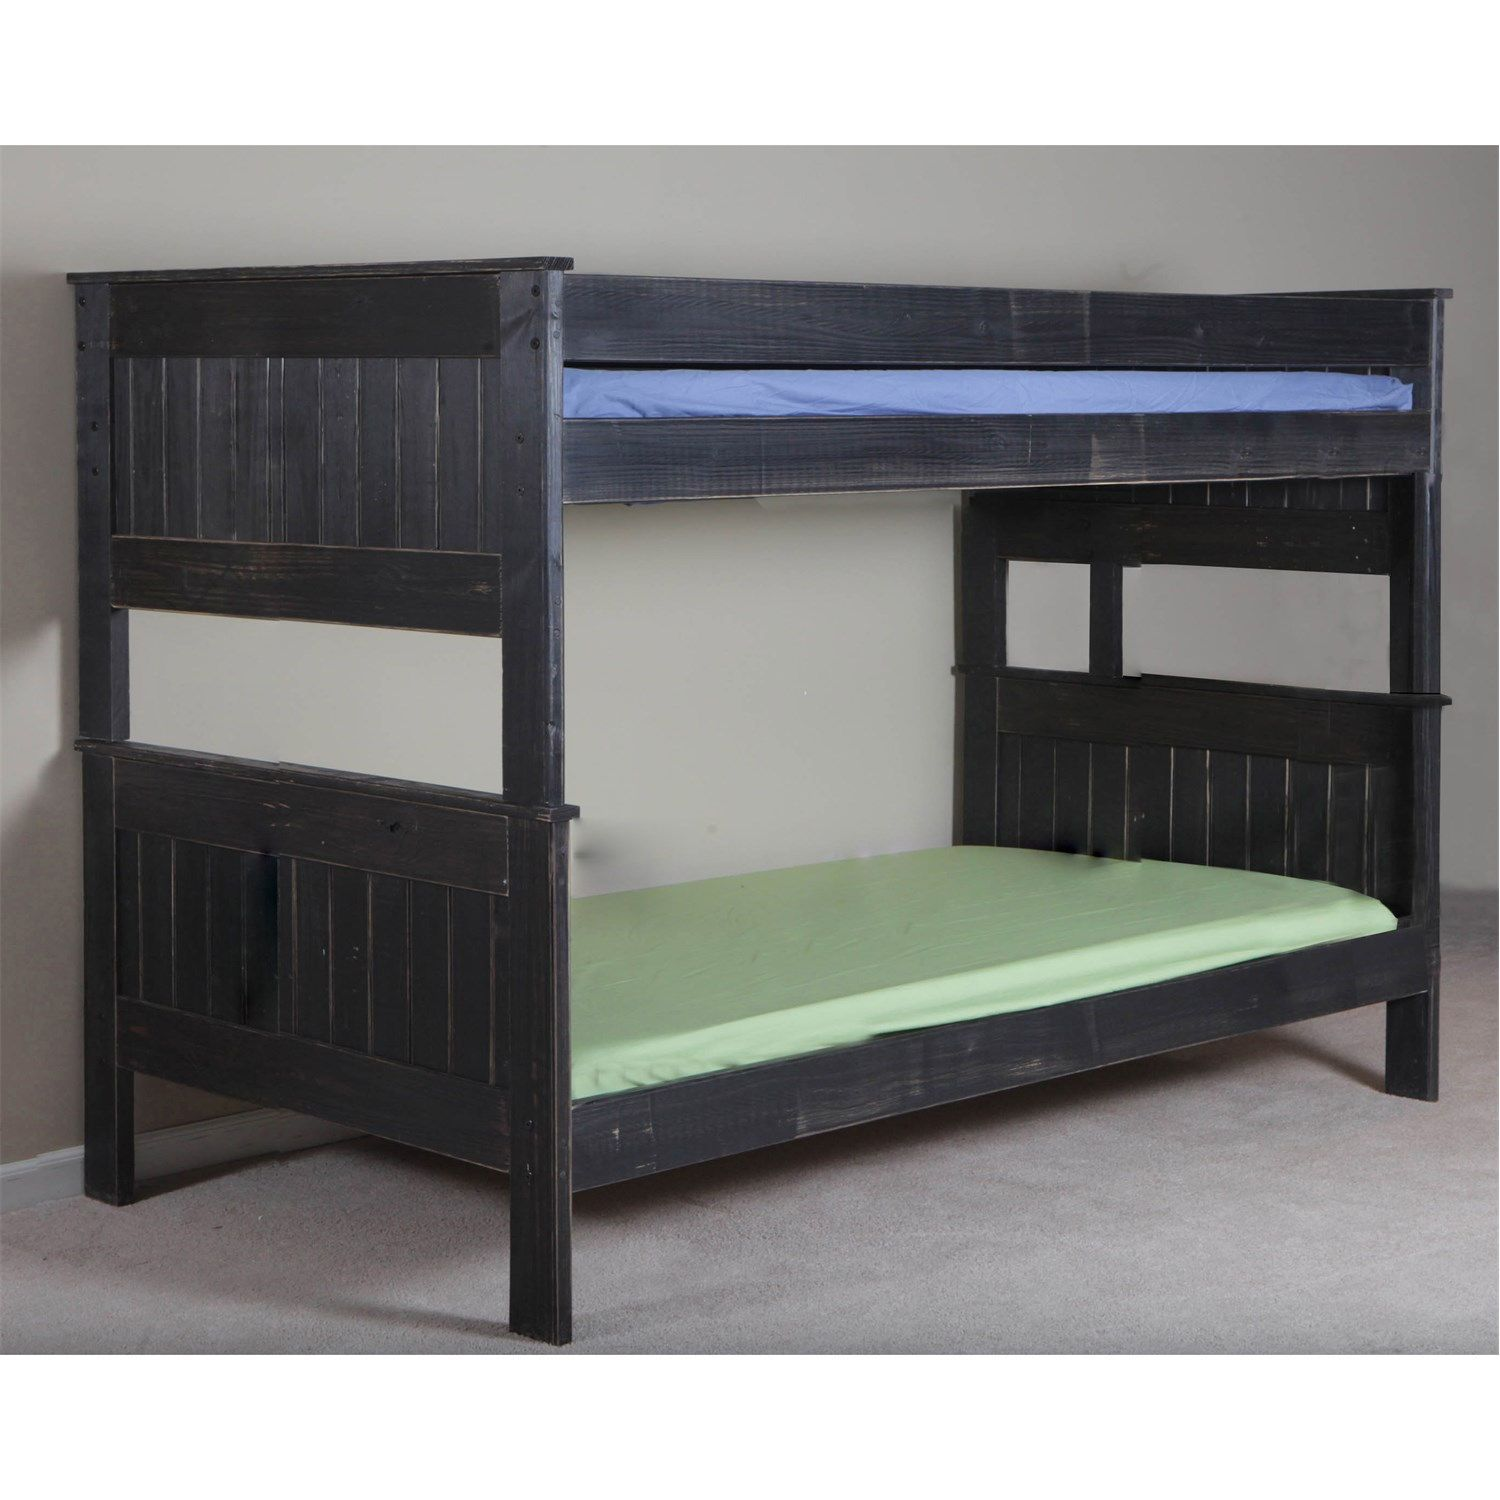 Chelsea Home Furniture 316013f Full Stackable Bunk Bed In Black Distressed